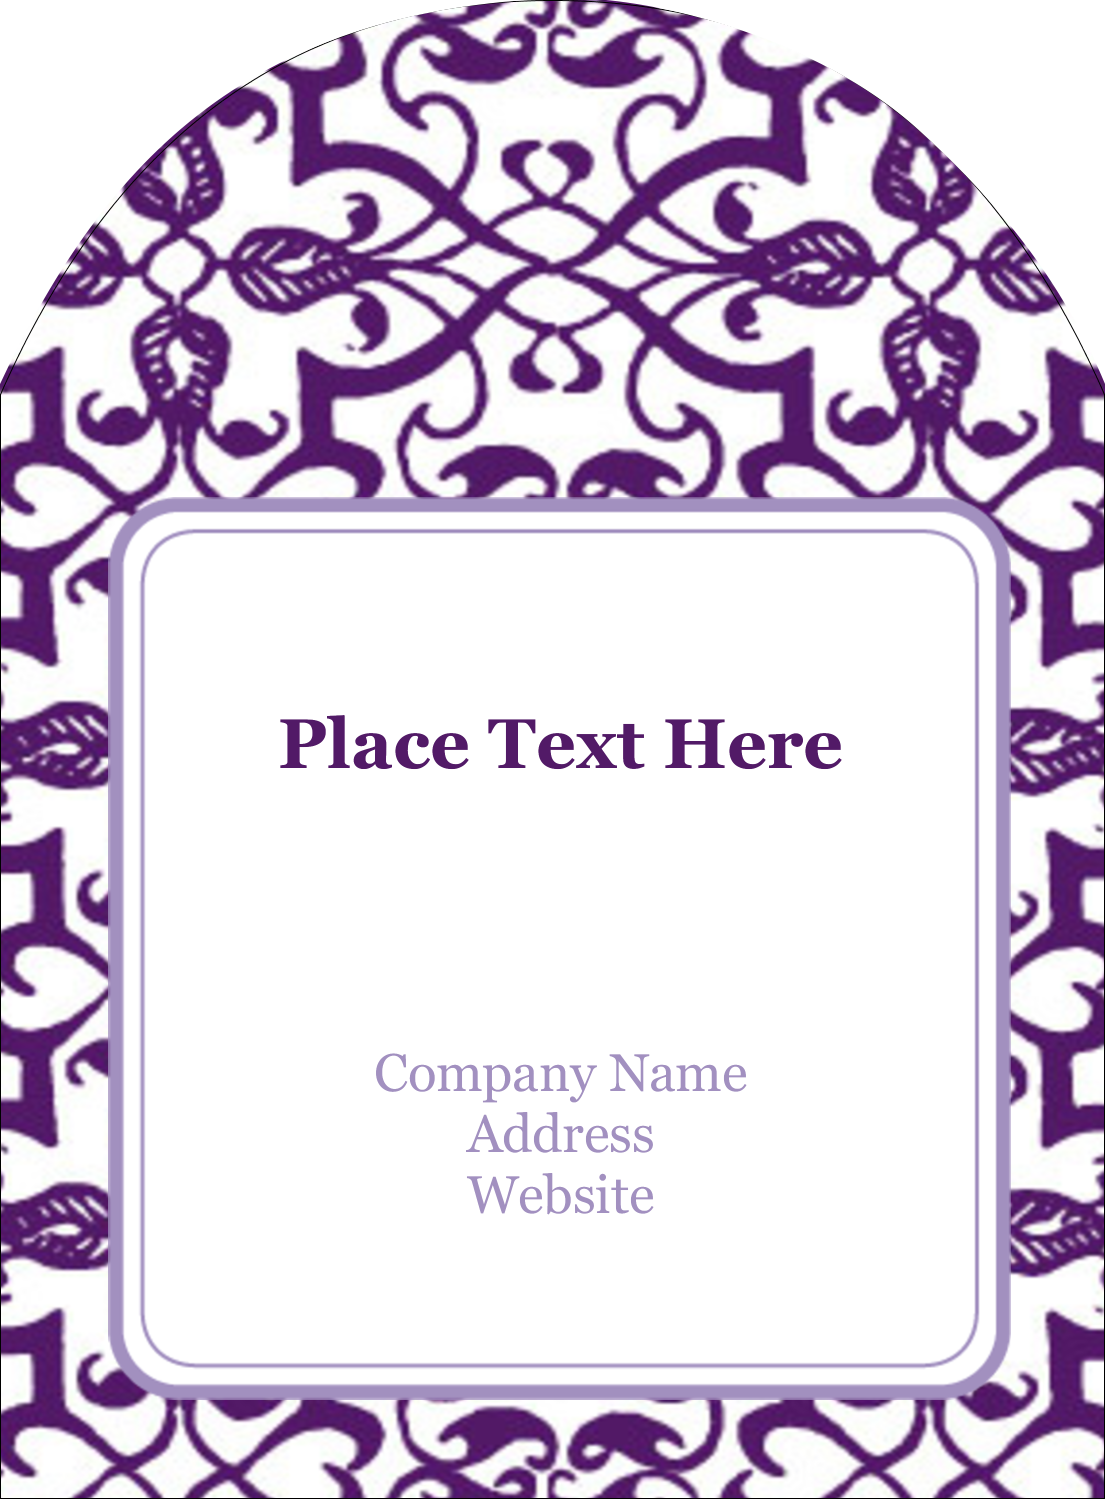 Embrace the elegance of these Purple Swirls Pattern templates for your next project!